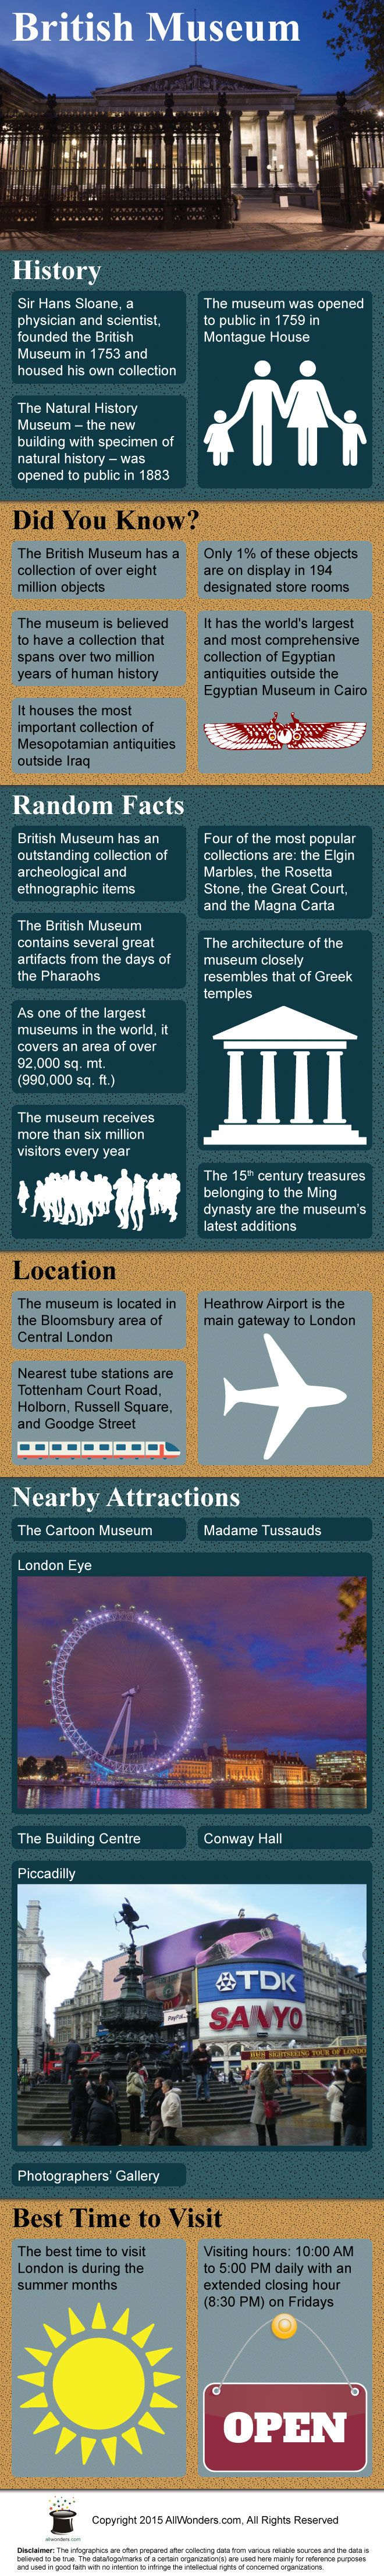 British Museum Infographic Want to see the world and know someone looking to…